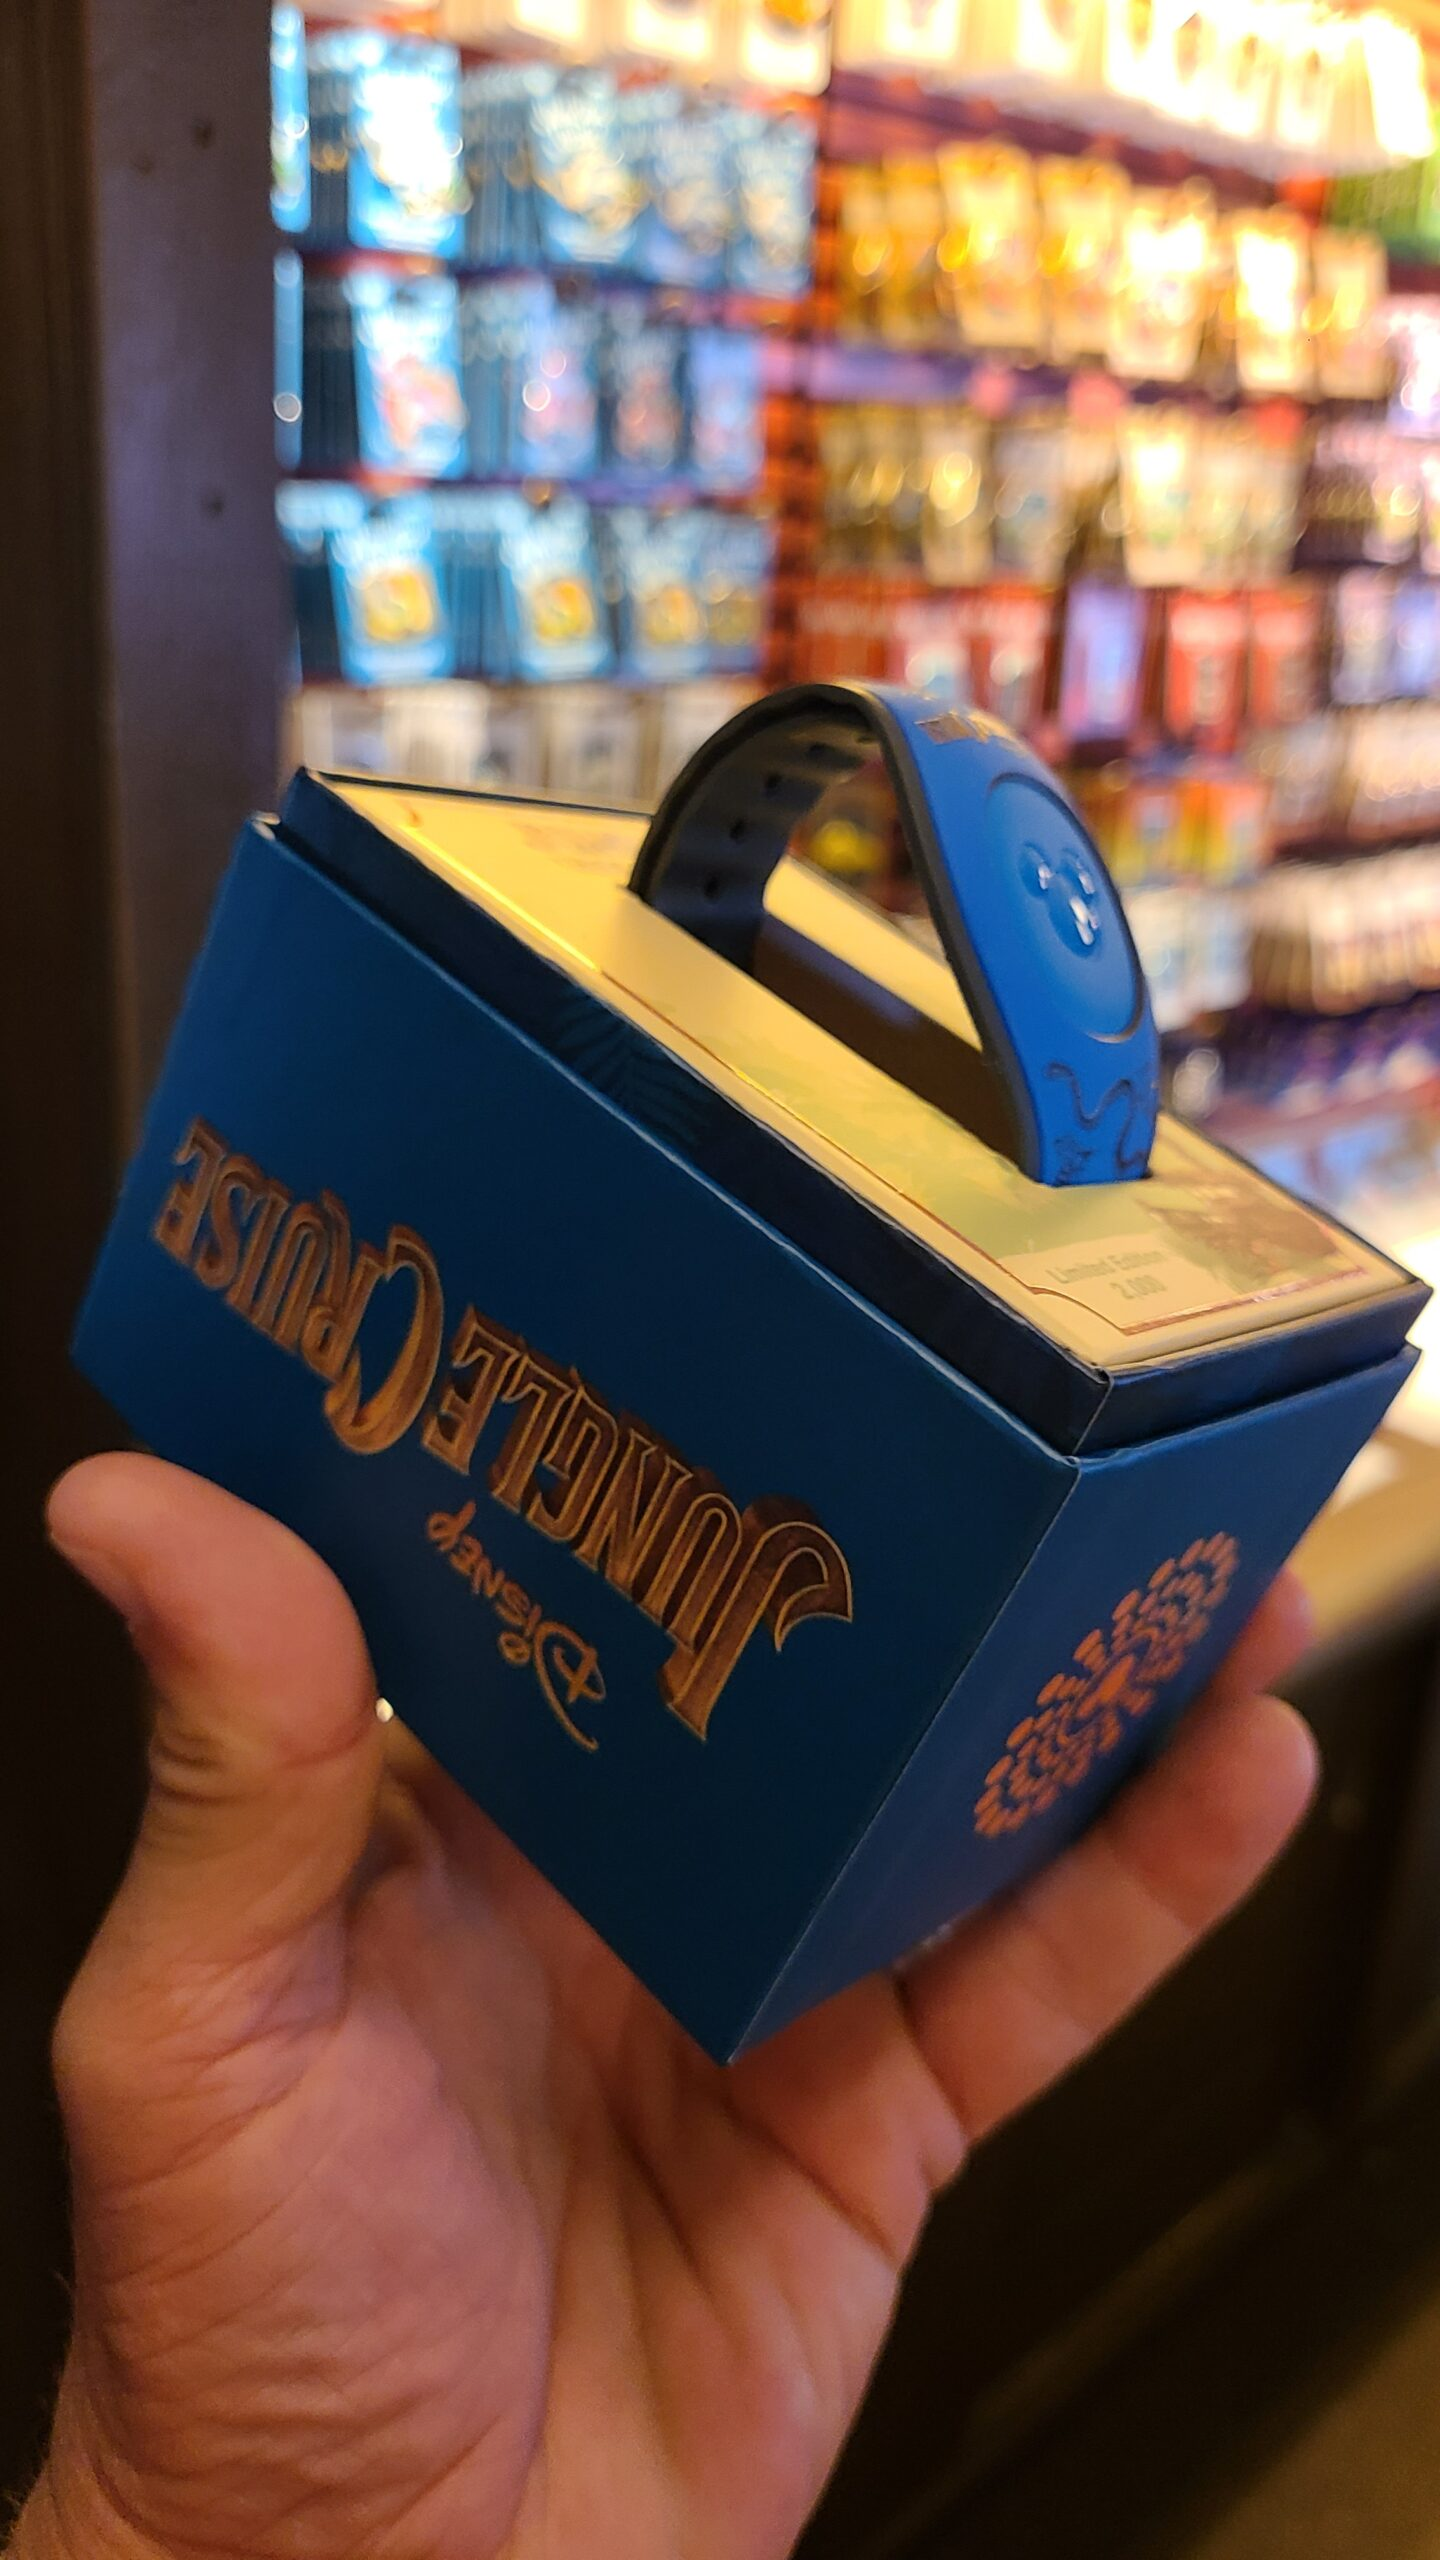 2 new Magic Bands Spotted in the Magic Kingdom 4